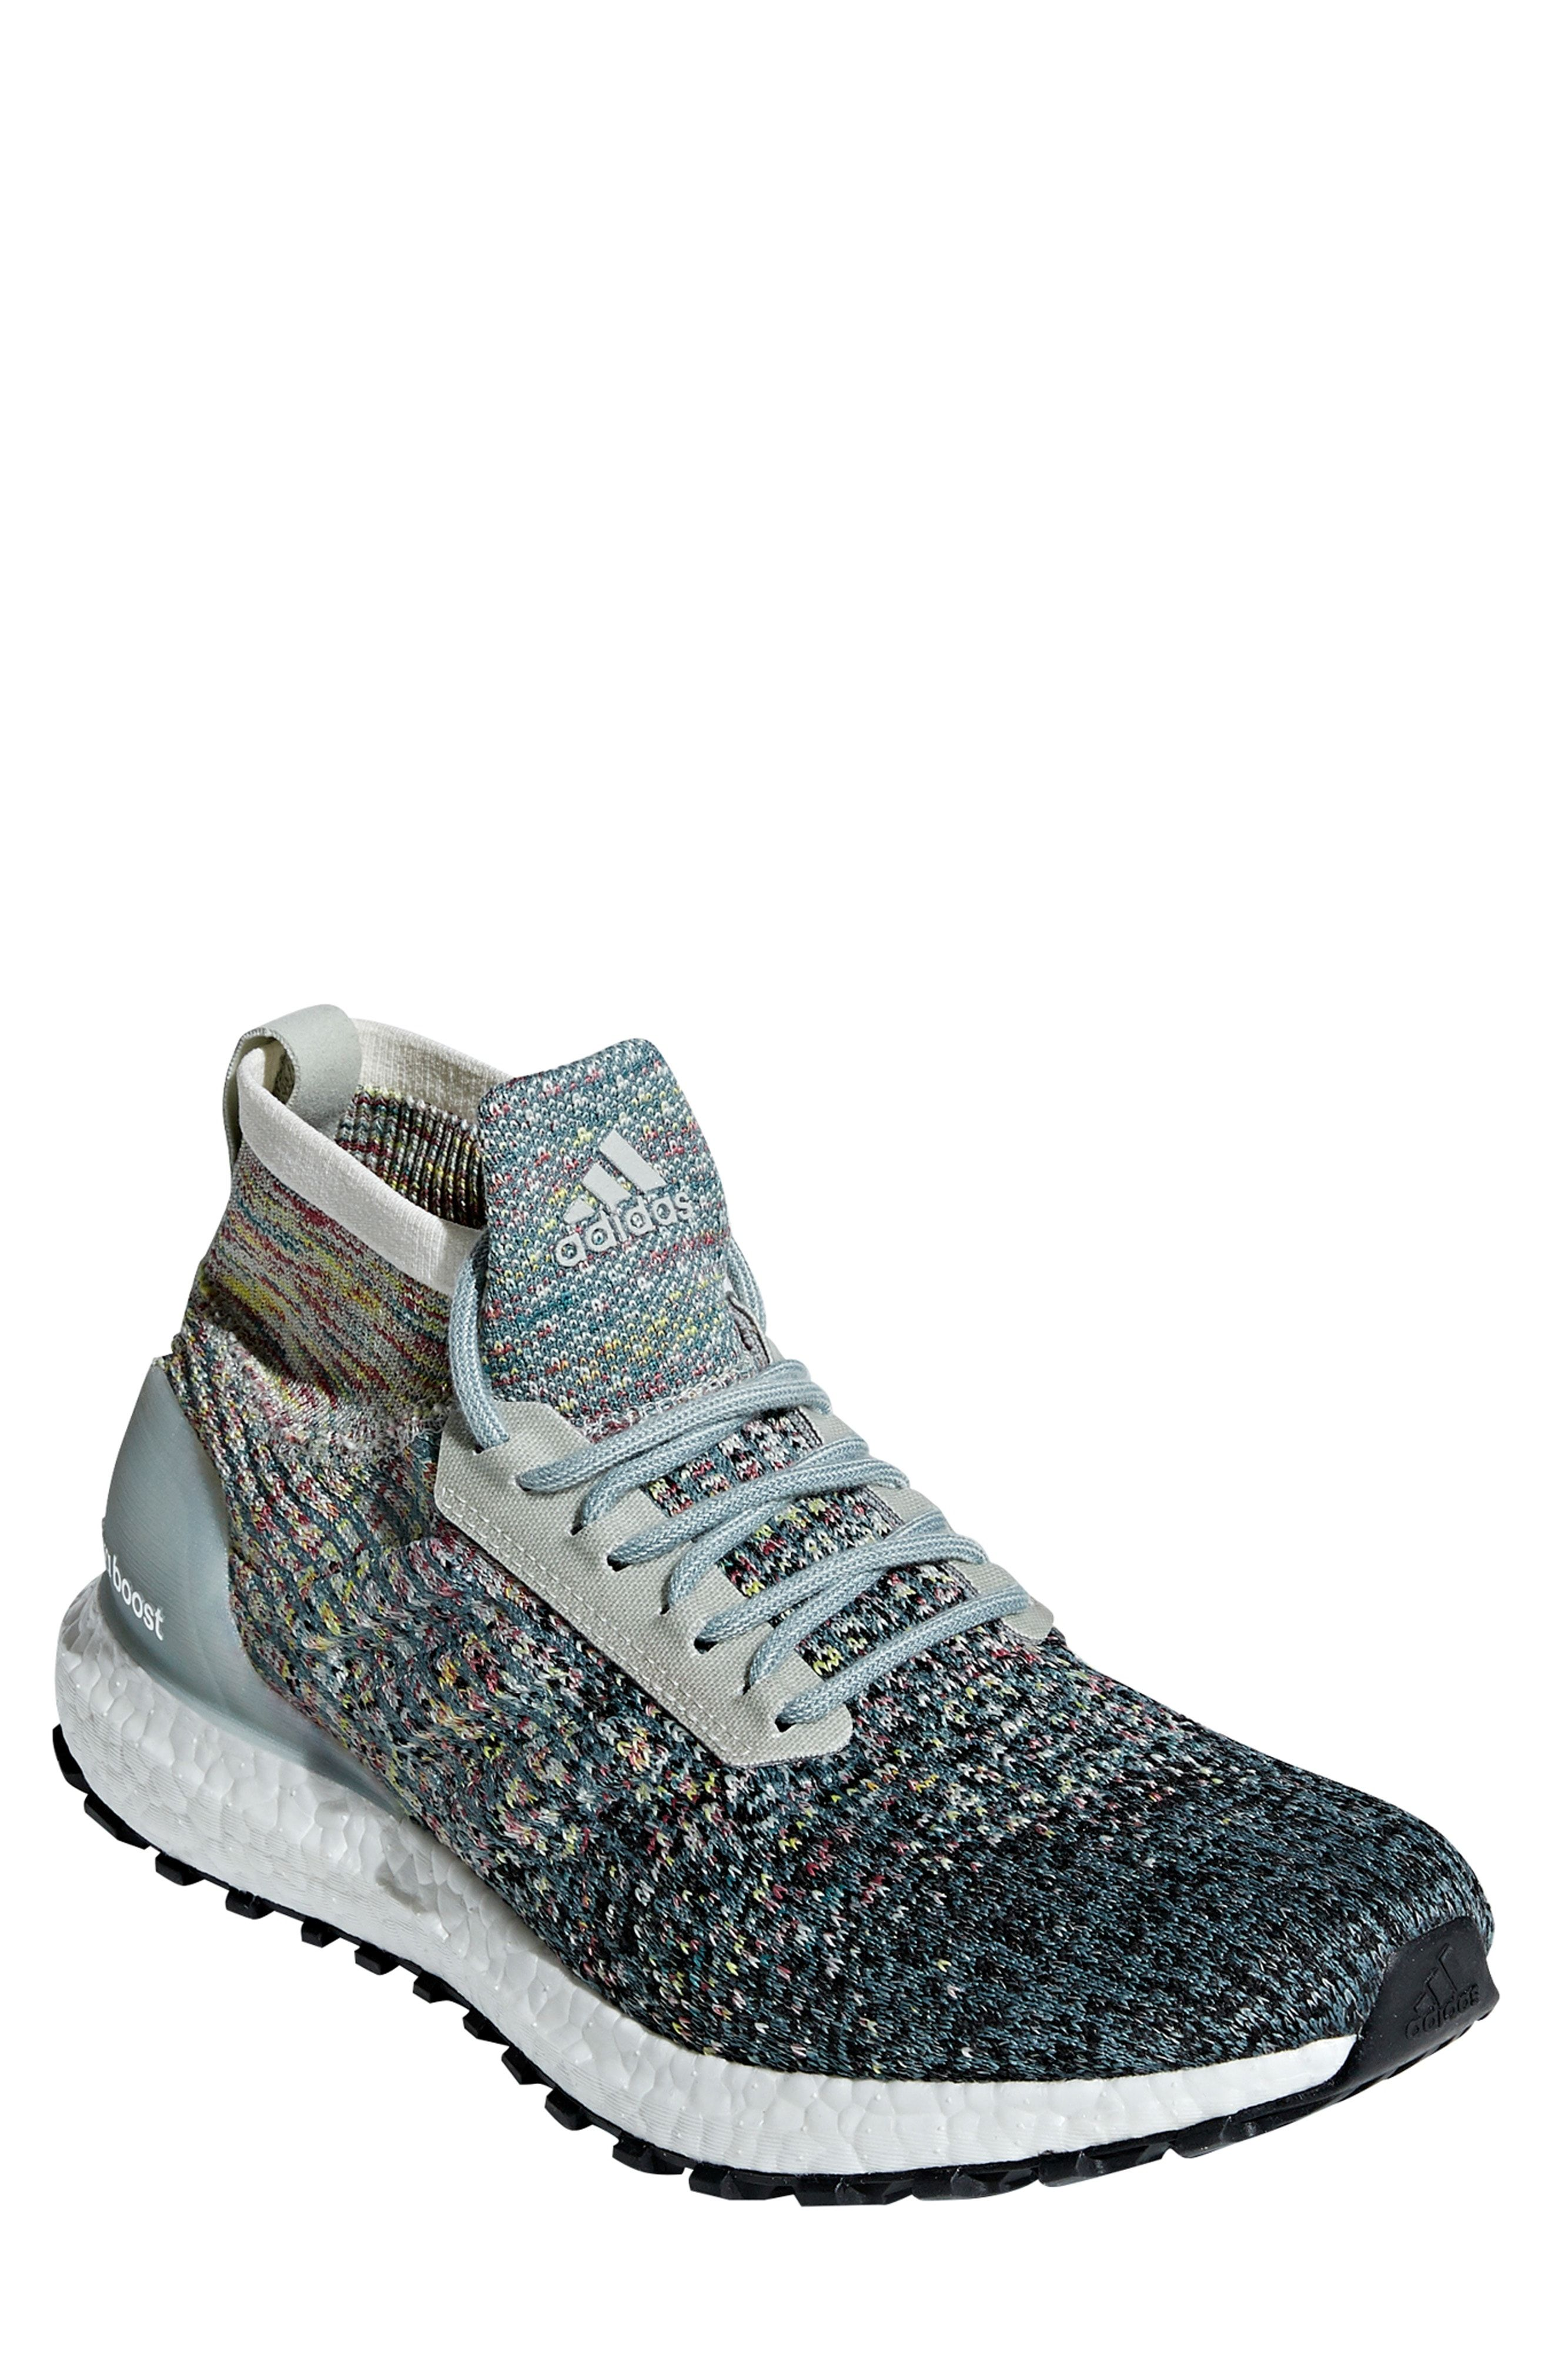 fcbbd0d1c9da4 ADIDAS ORIGINALS ULTRABOOST ALL TERRAIN LTD RUNNING SHOE.  adidasoriginals   shoes